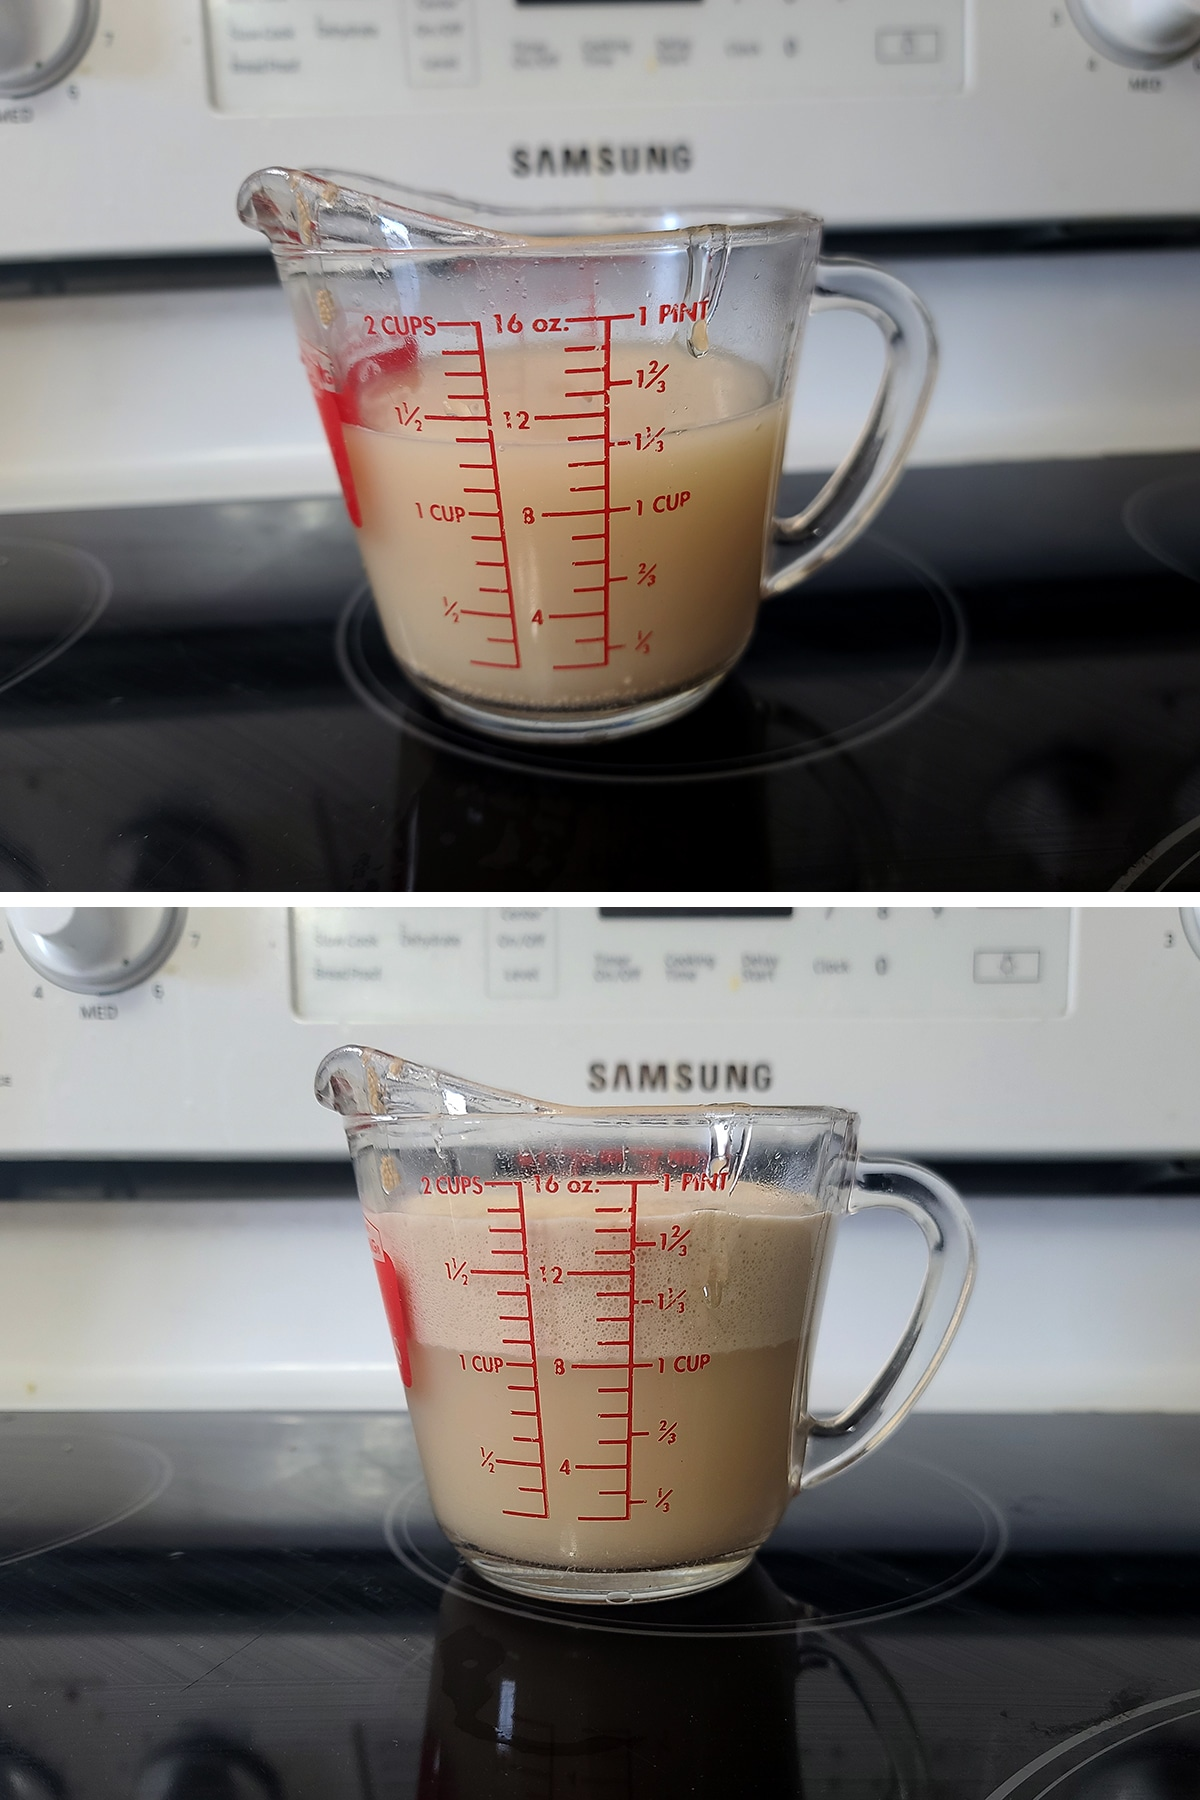 Yeast, honey, and water in a glass measuring cup.